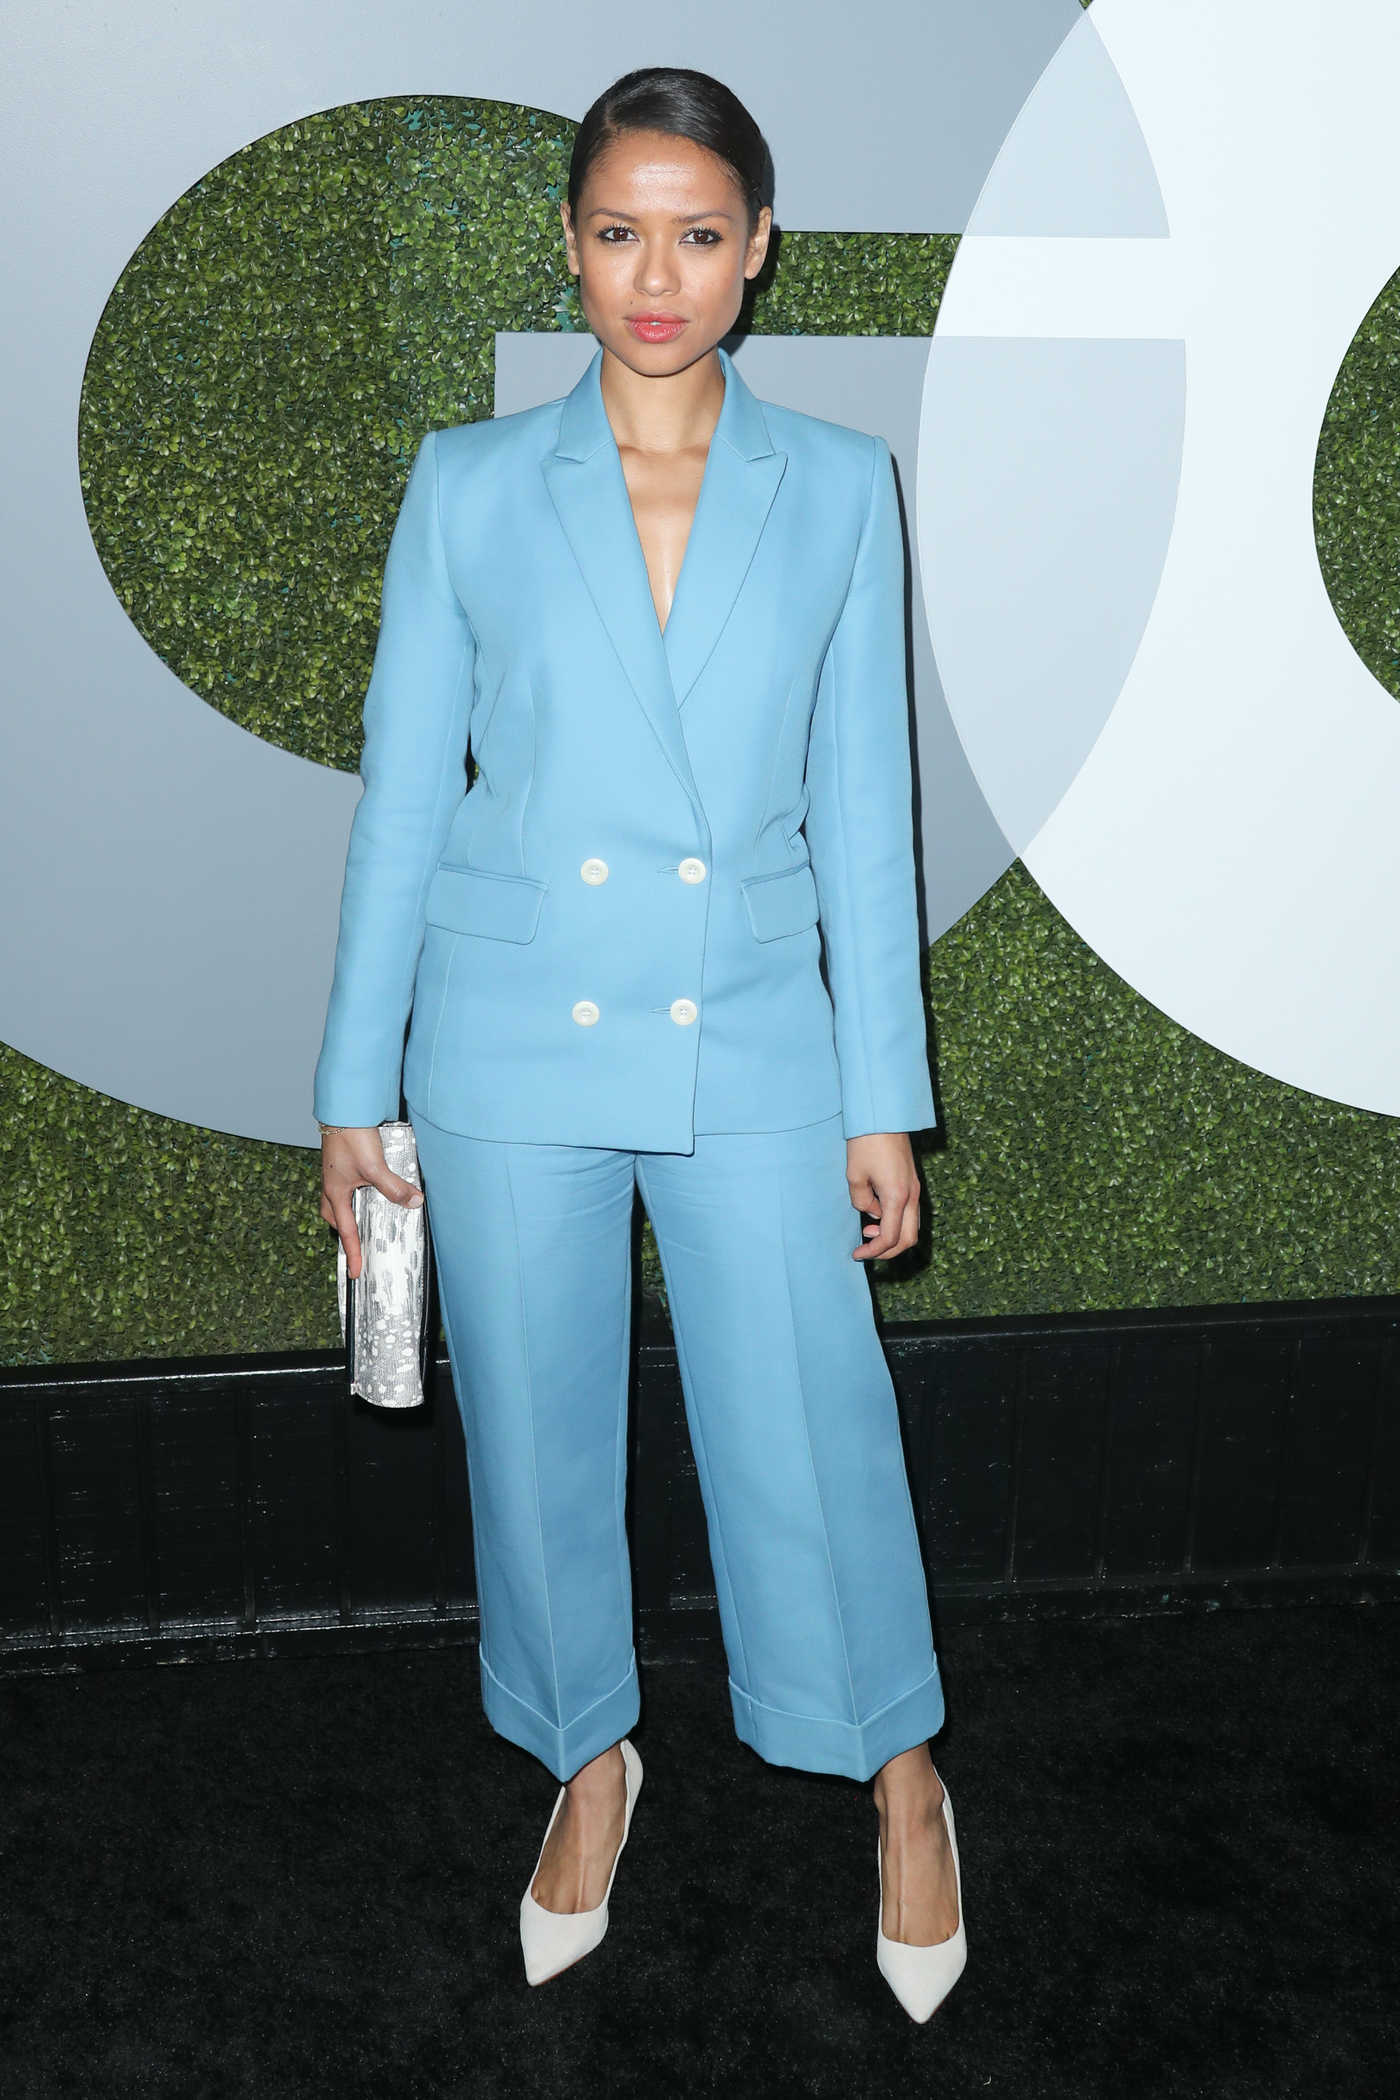 Gugu Mbatha-Raw at the 2016 GQ Men of the Year Awards in West Hollywood 12/08/2016